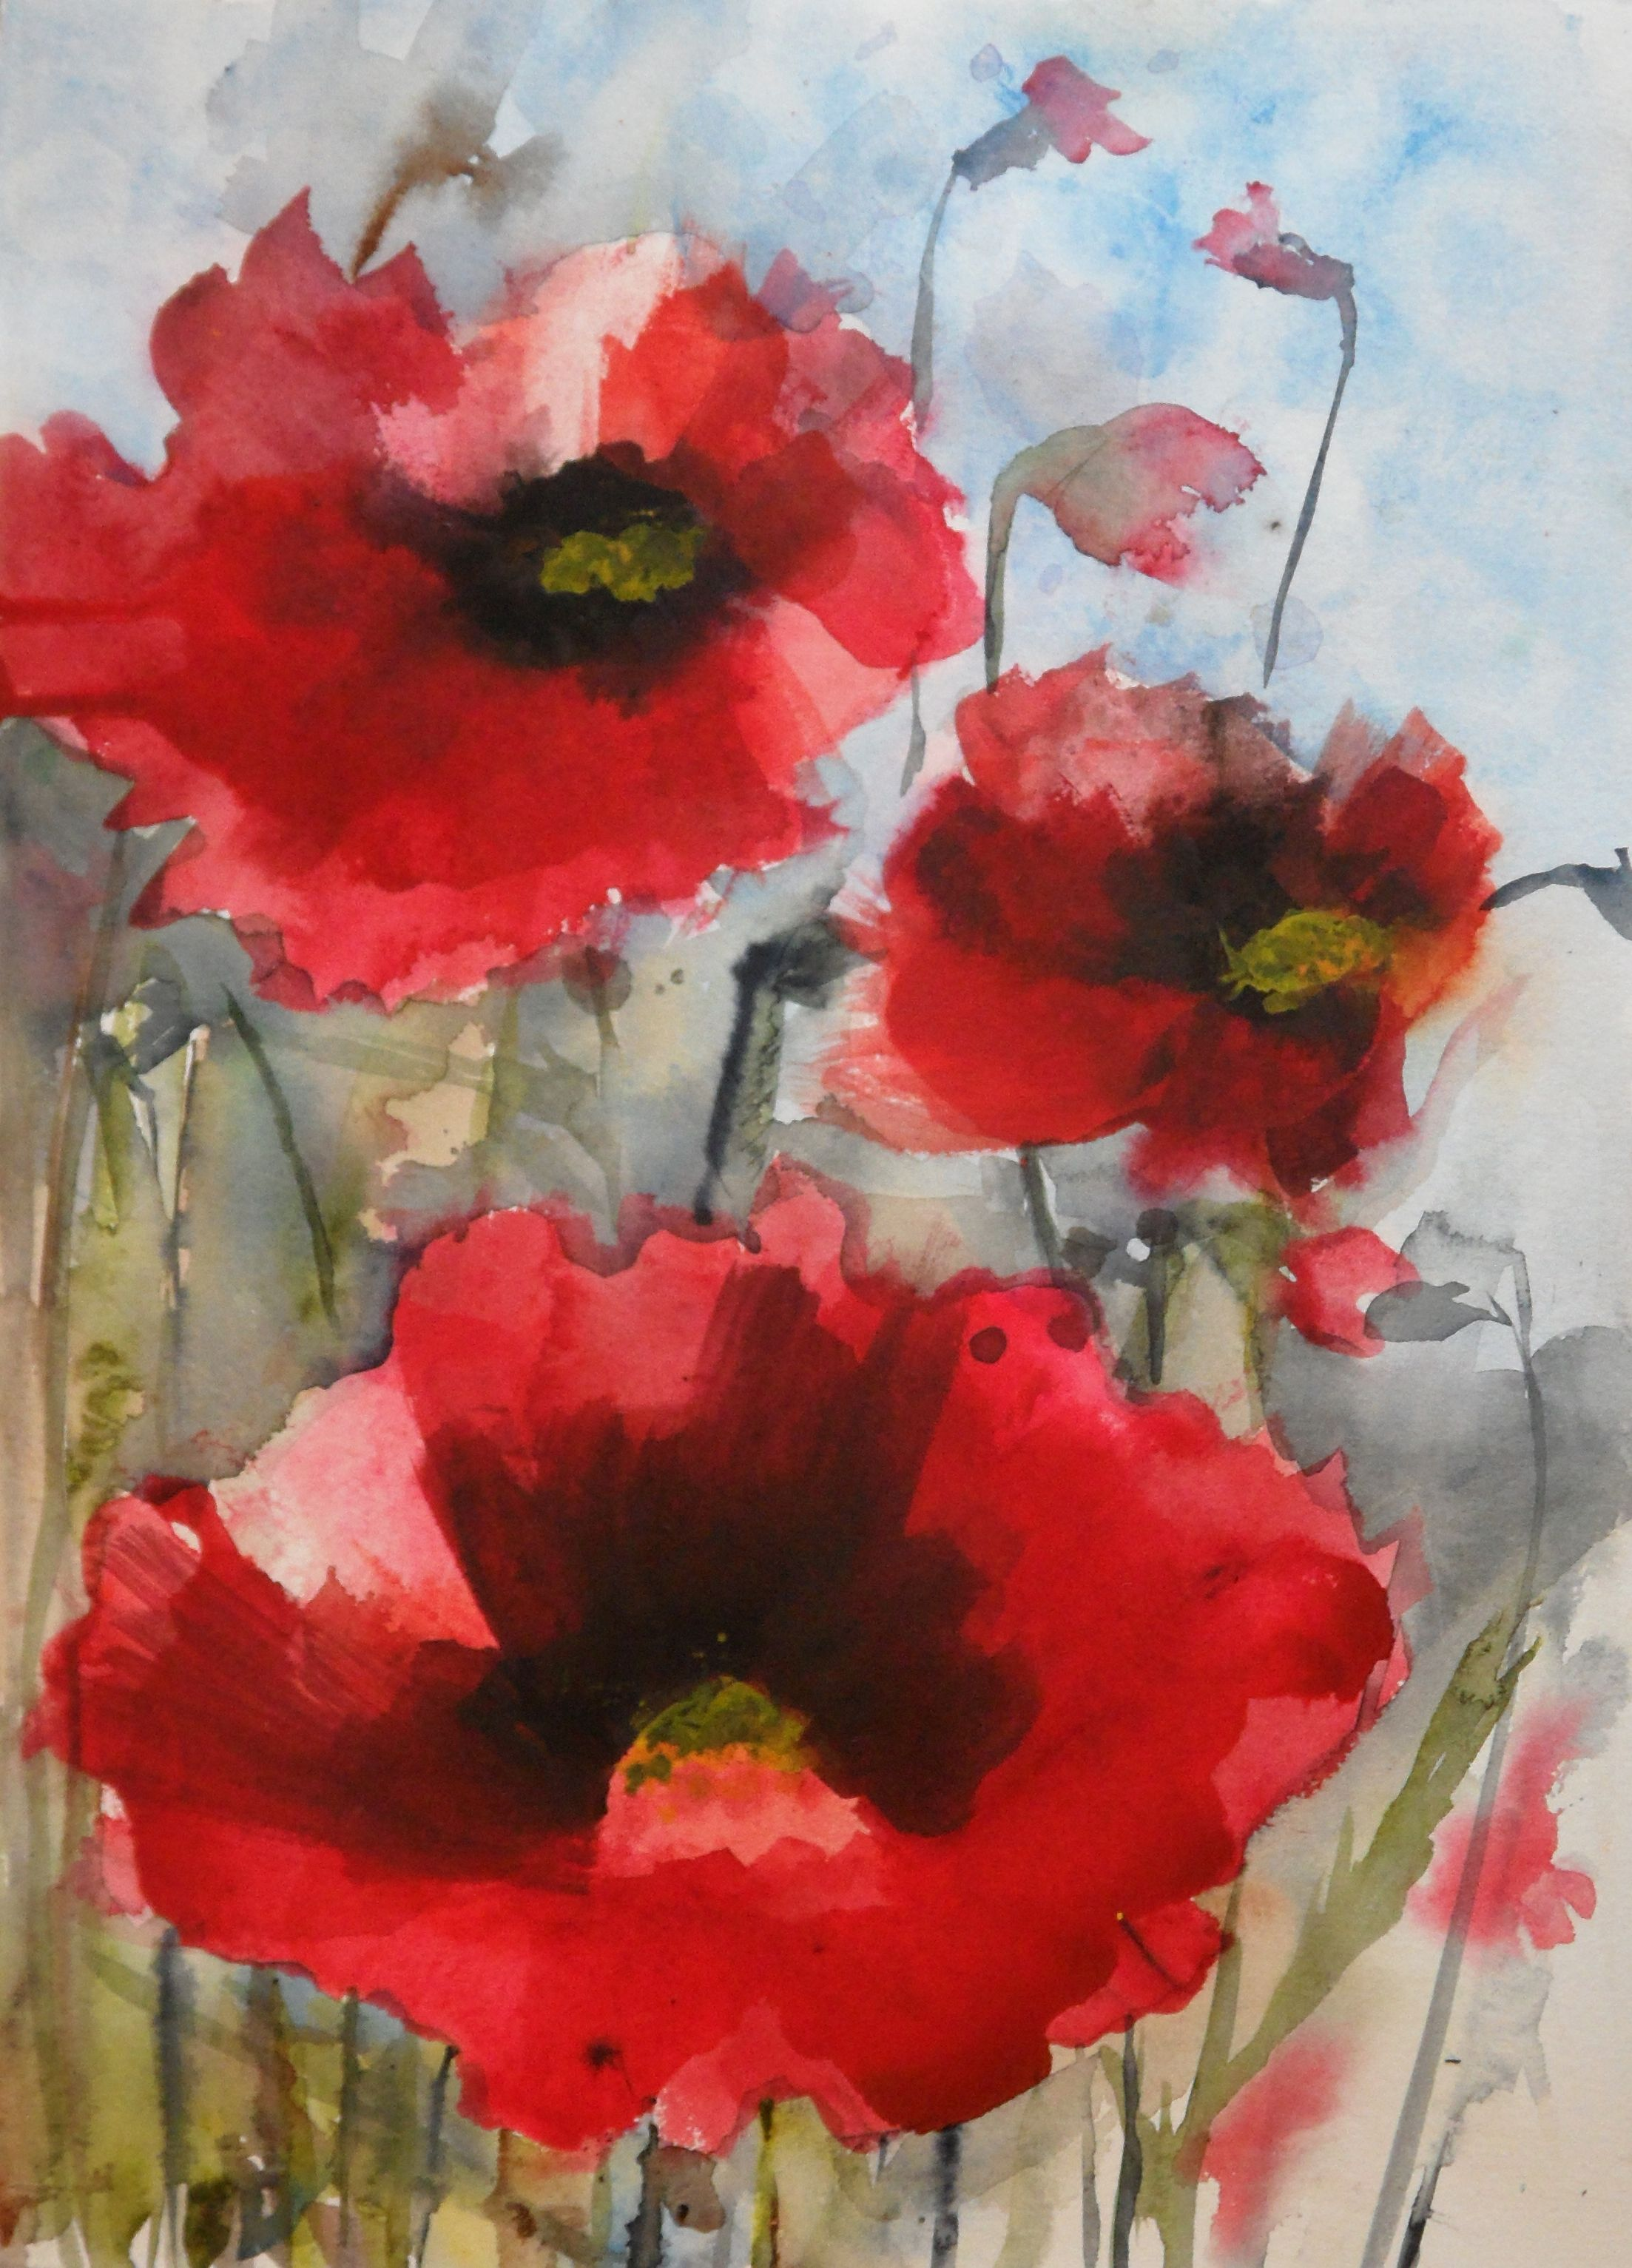 Red Poppies (With images) Watercolor poppies, Poppy